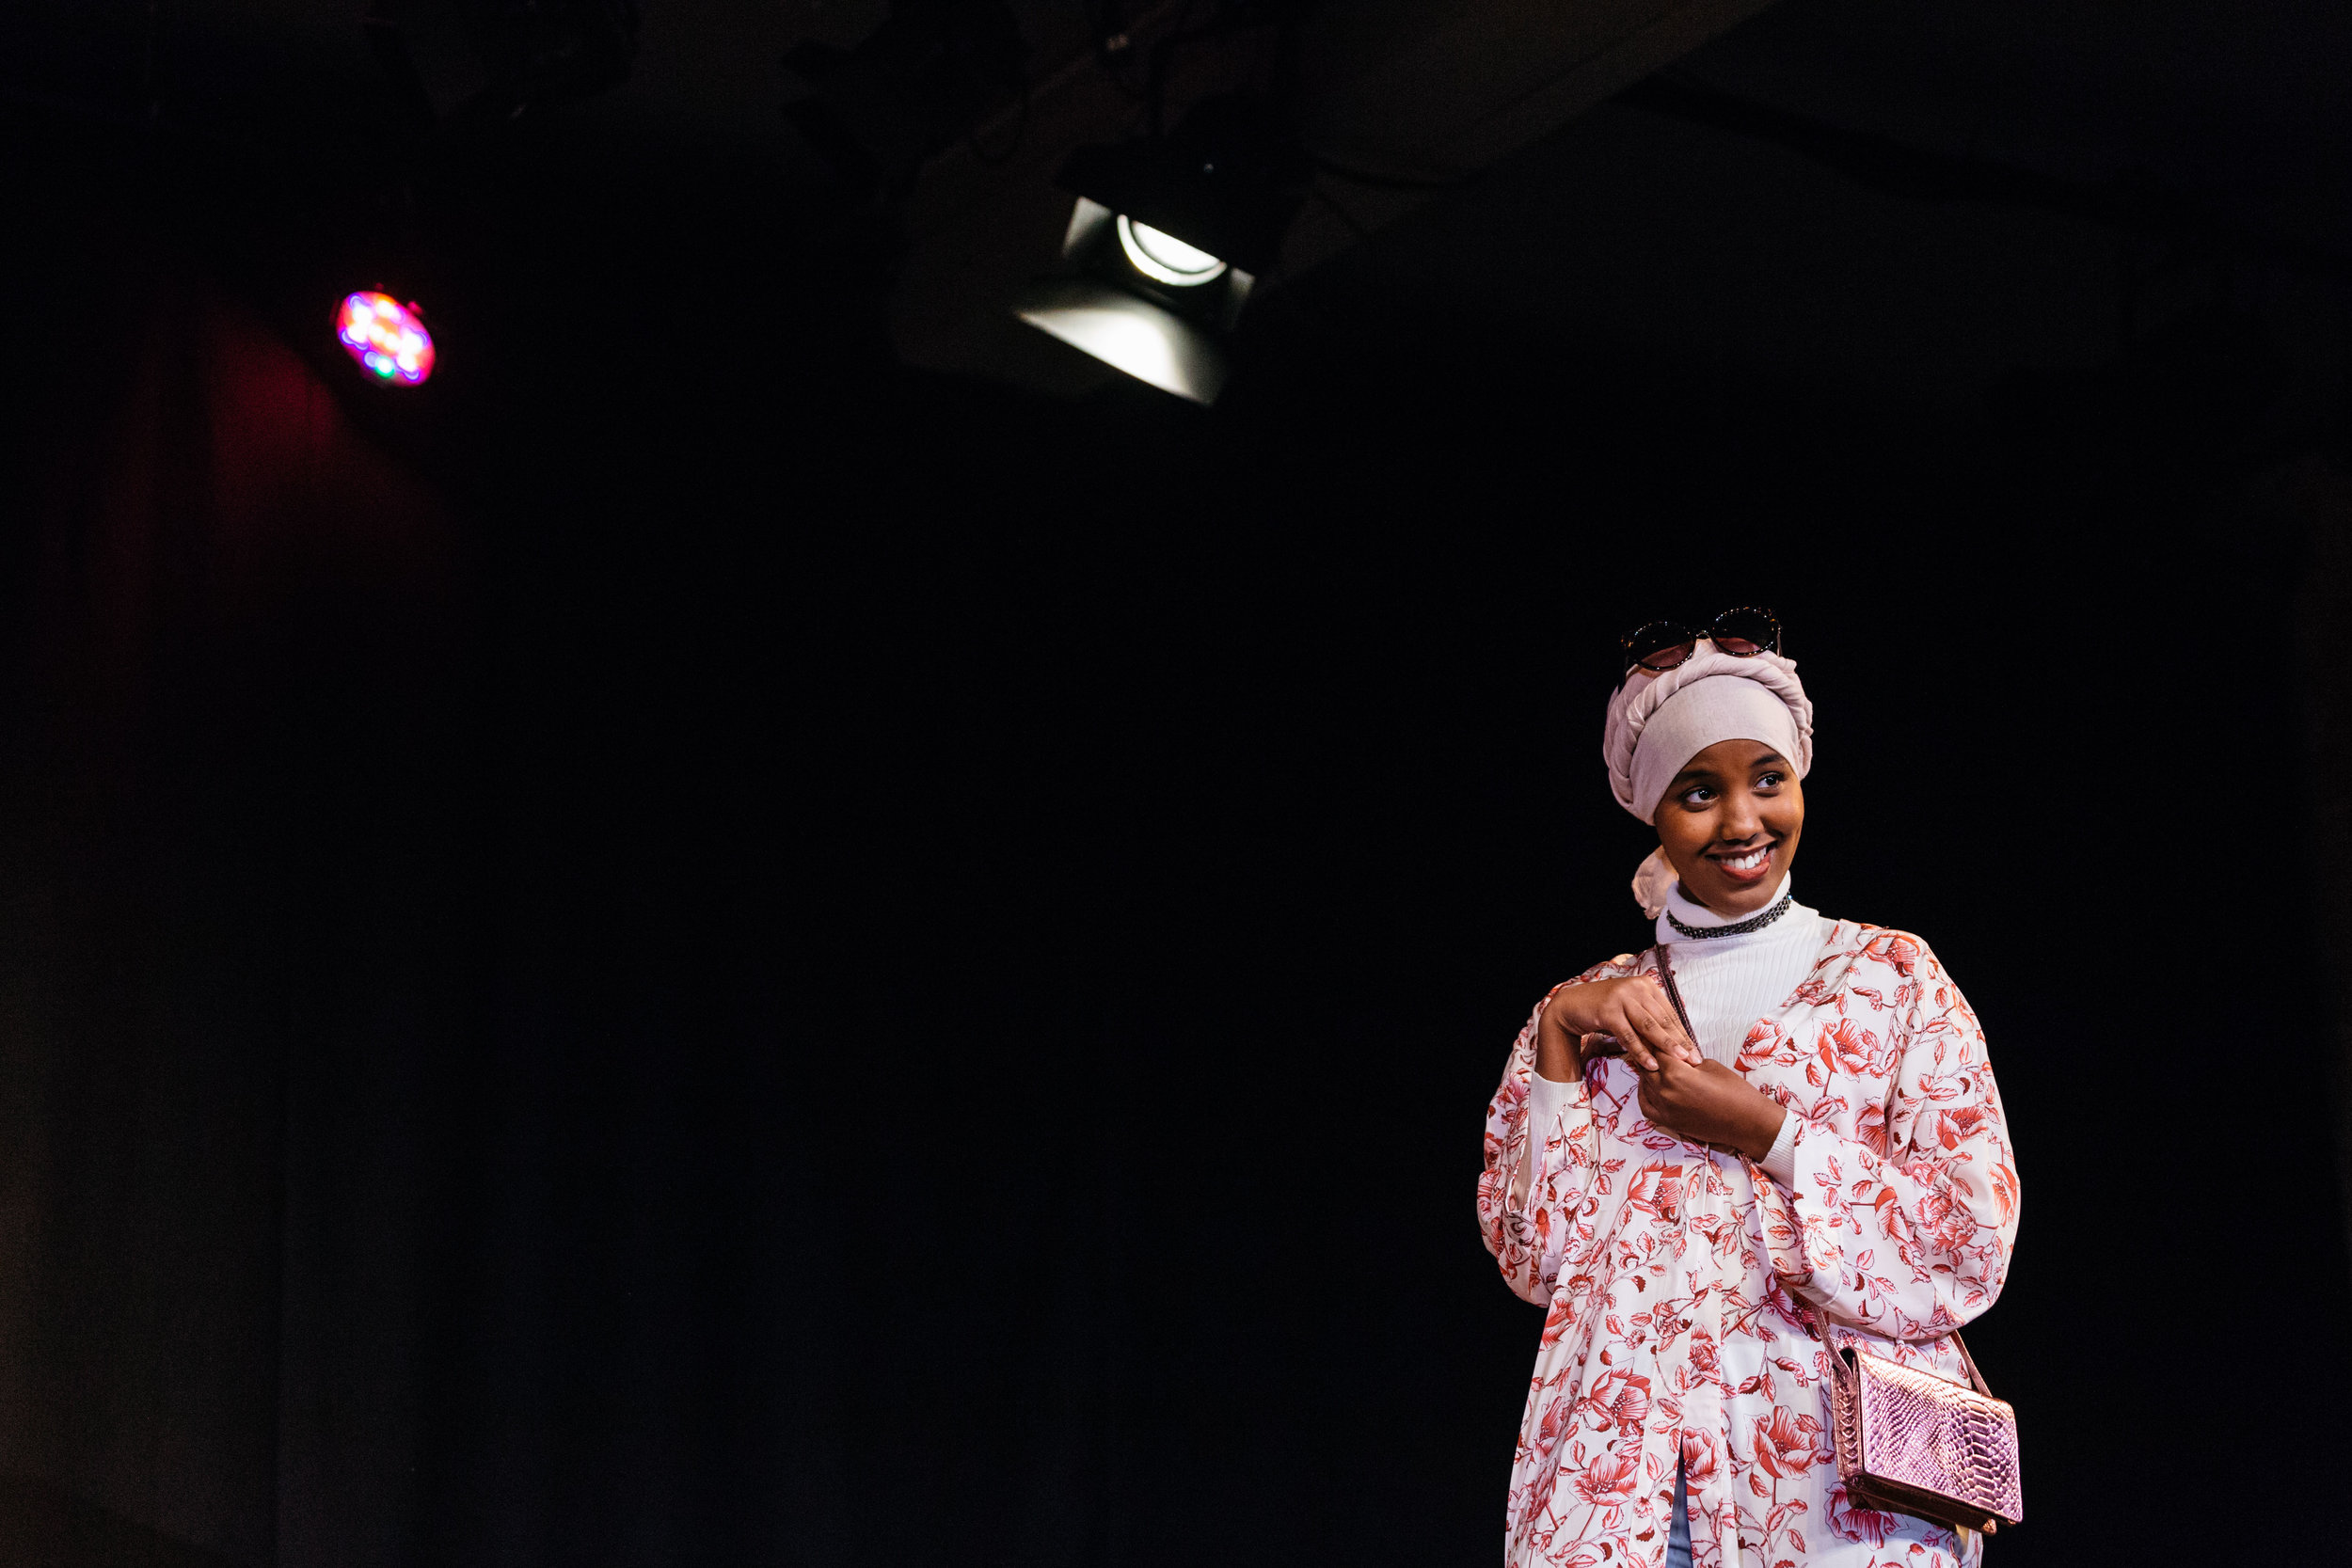 Hibo Muse in Hijabi Monologues London directed by Milli Bhatia-622 ©helenmurray.jpg